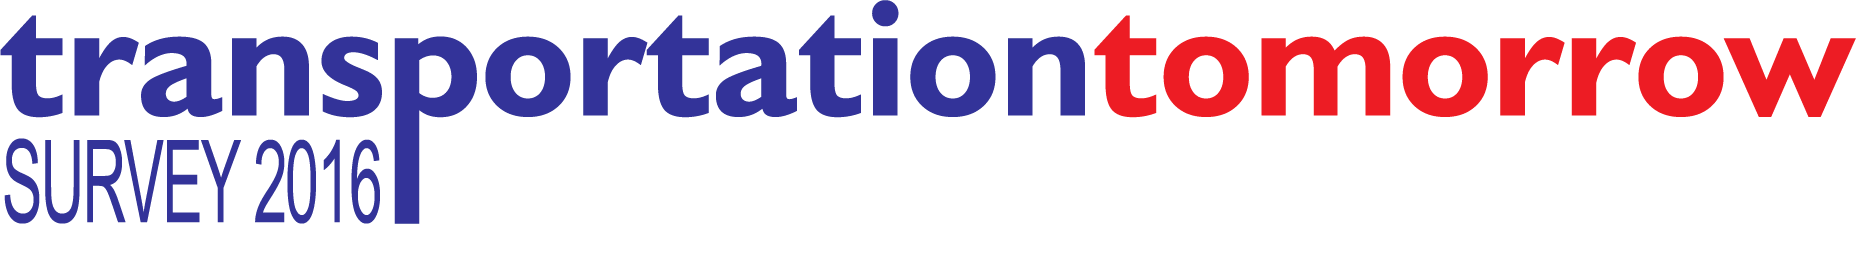 Transportation Tomorrow logo